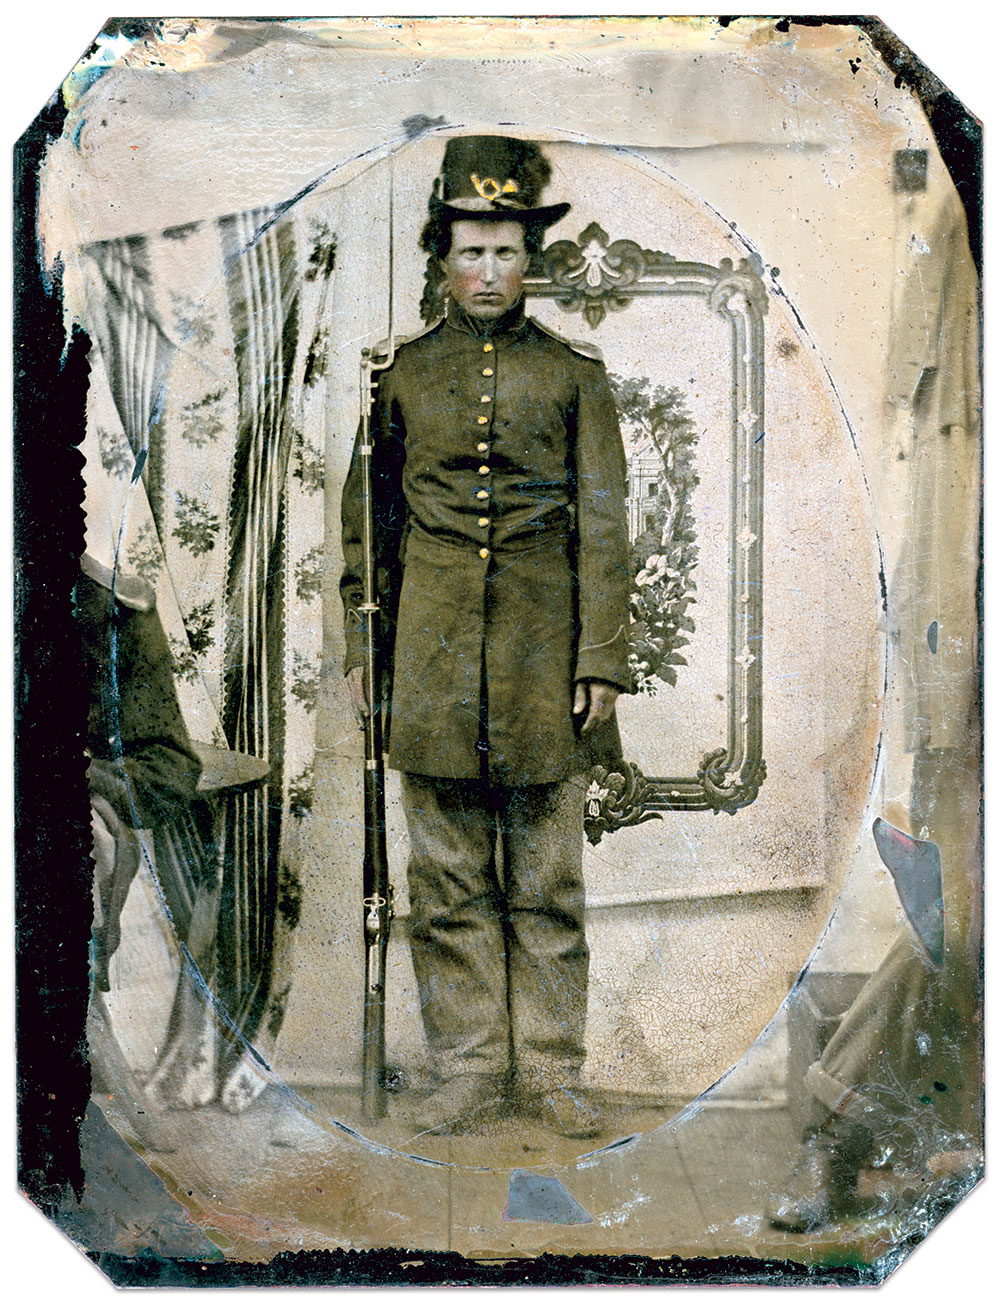 """""""1862"""" is scratched on the back of the plate. Quarter-plate tintype by an unidentified photographer. Ron Field Collection."""